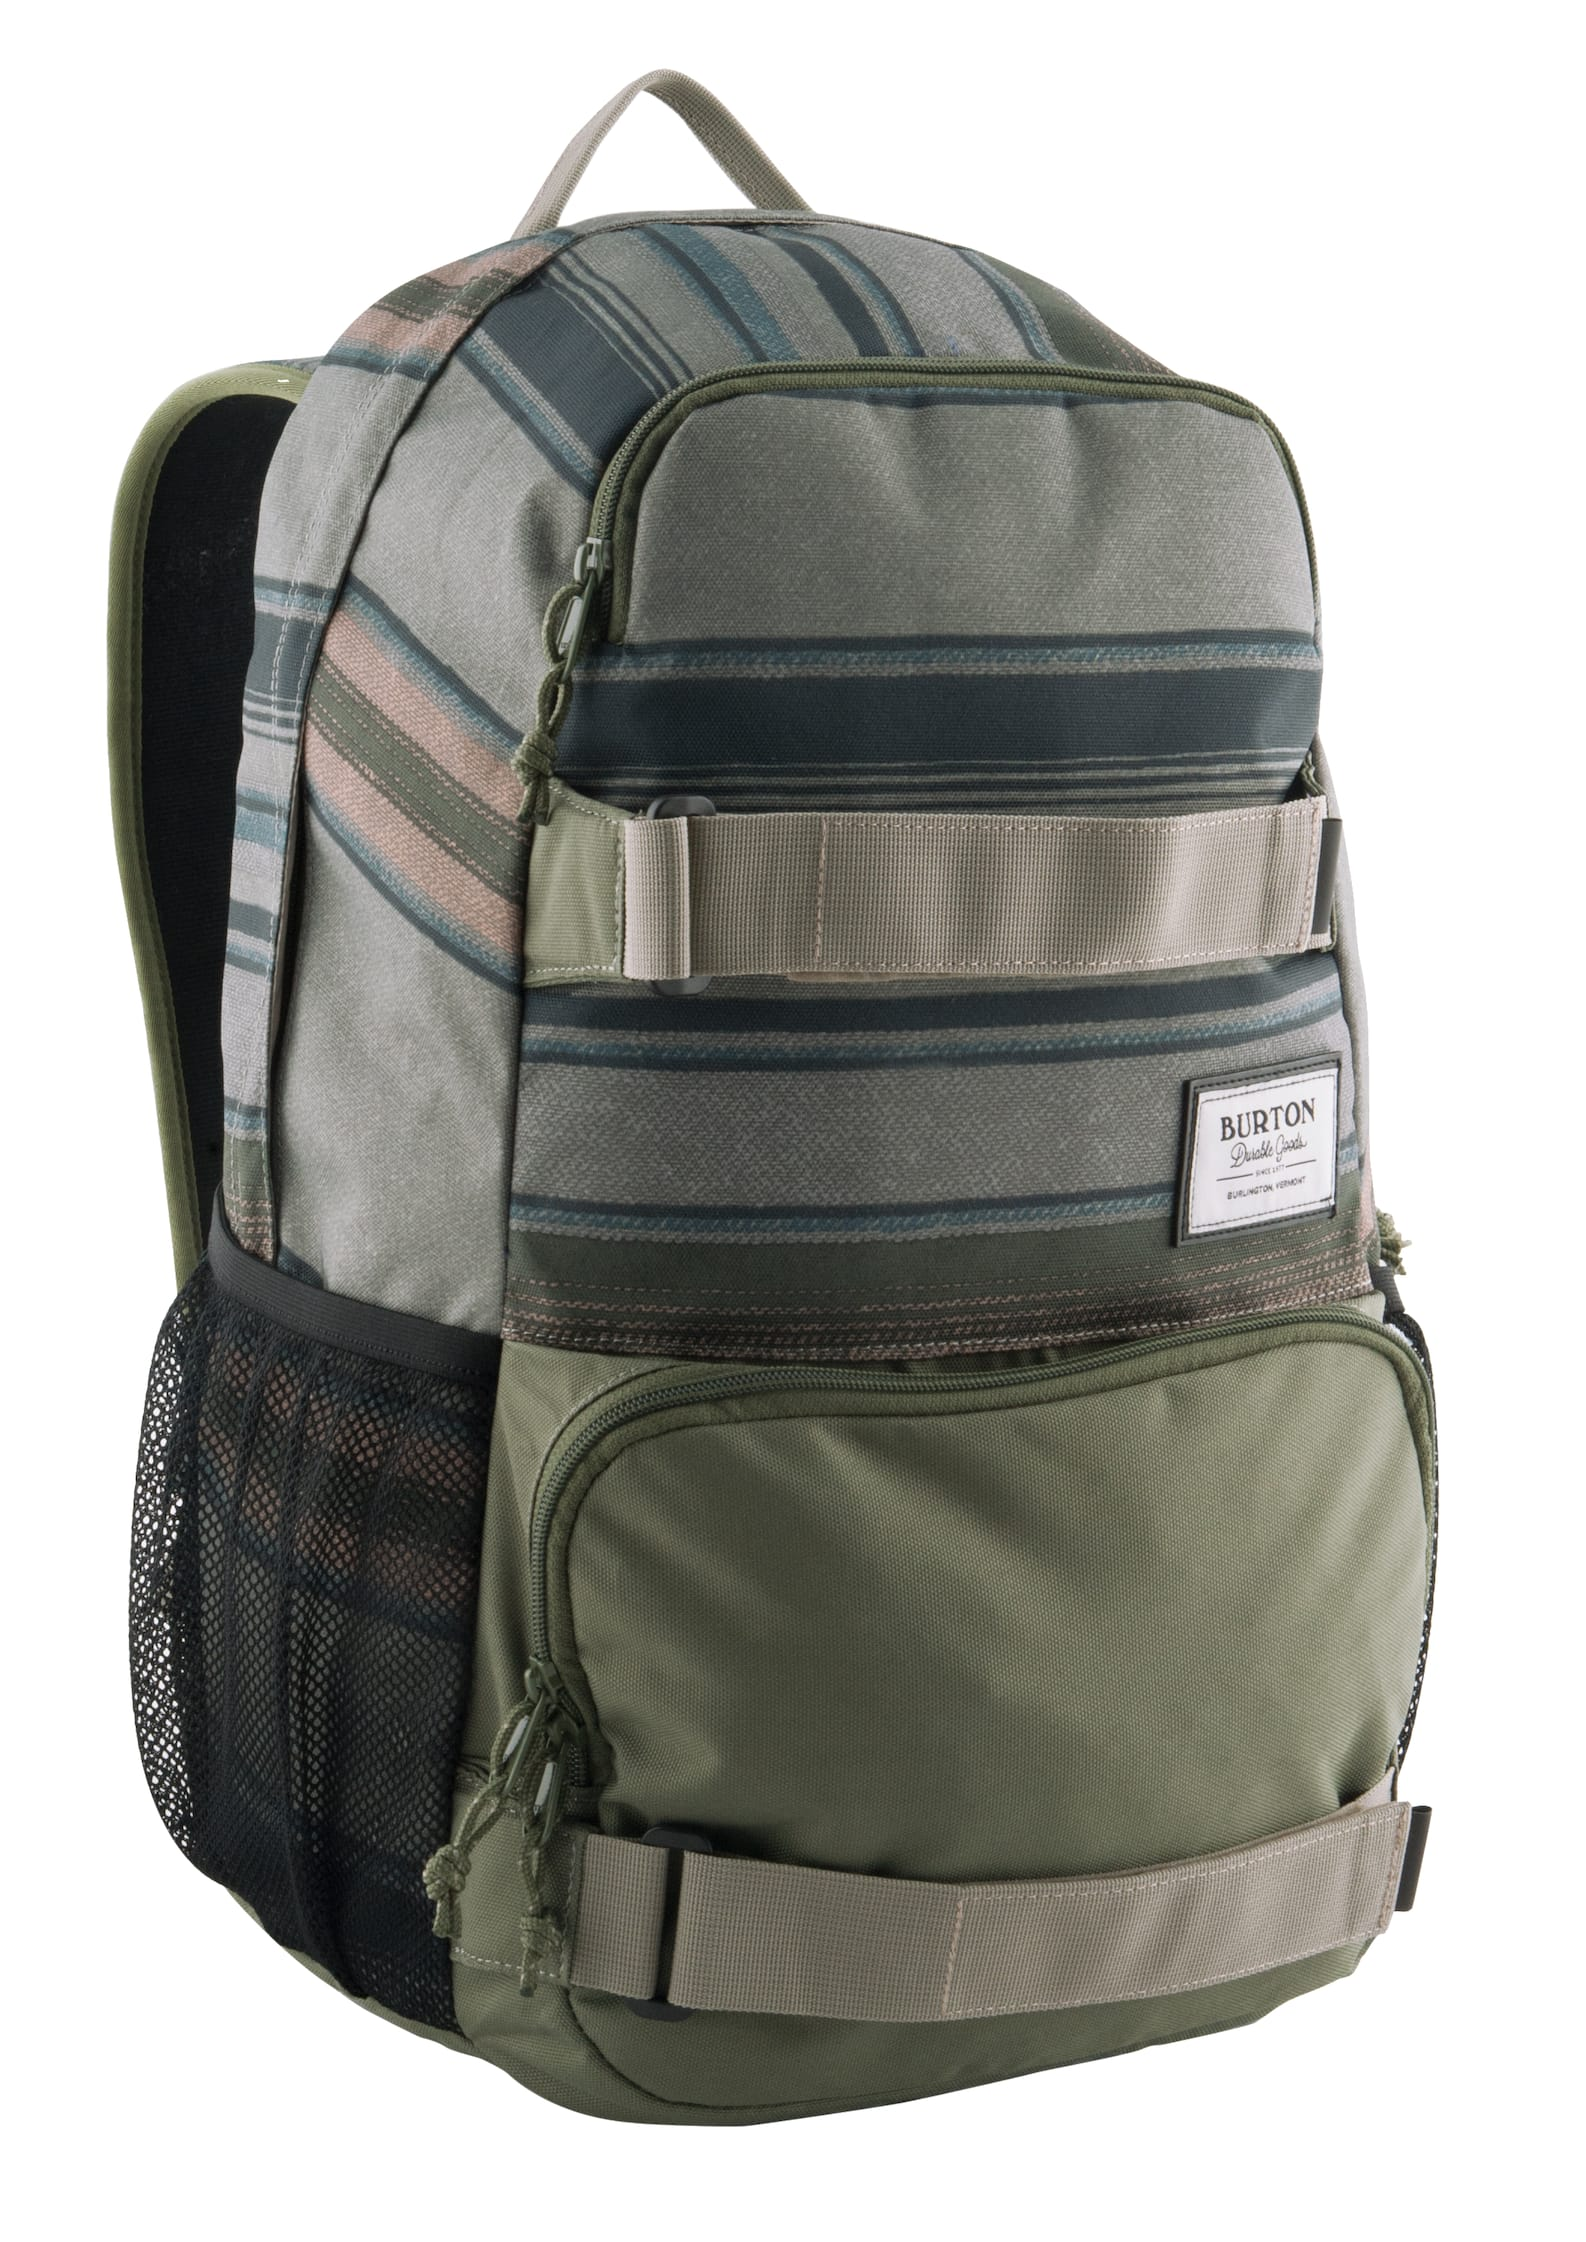 2d9ed6389f Bags and Luggage Sale